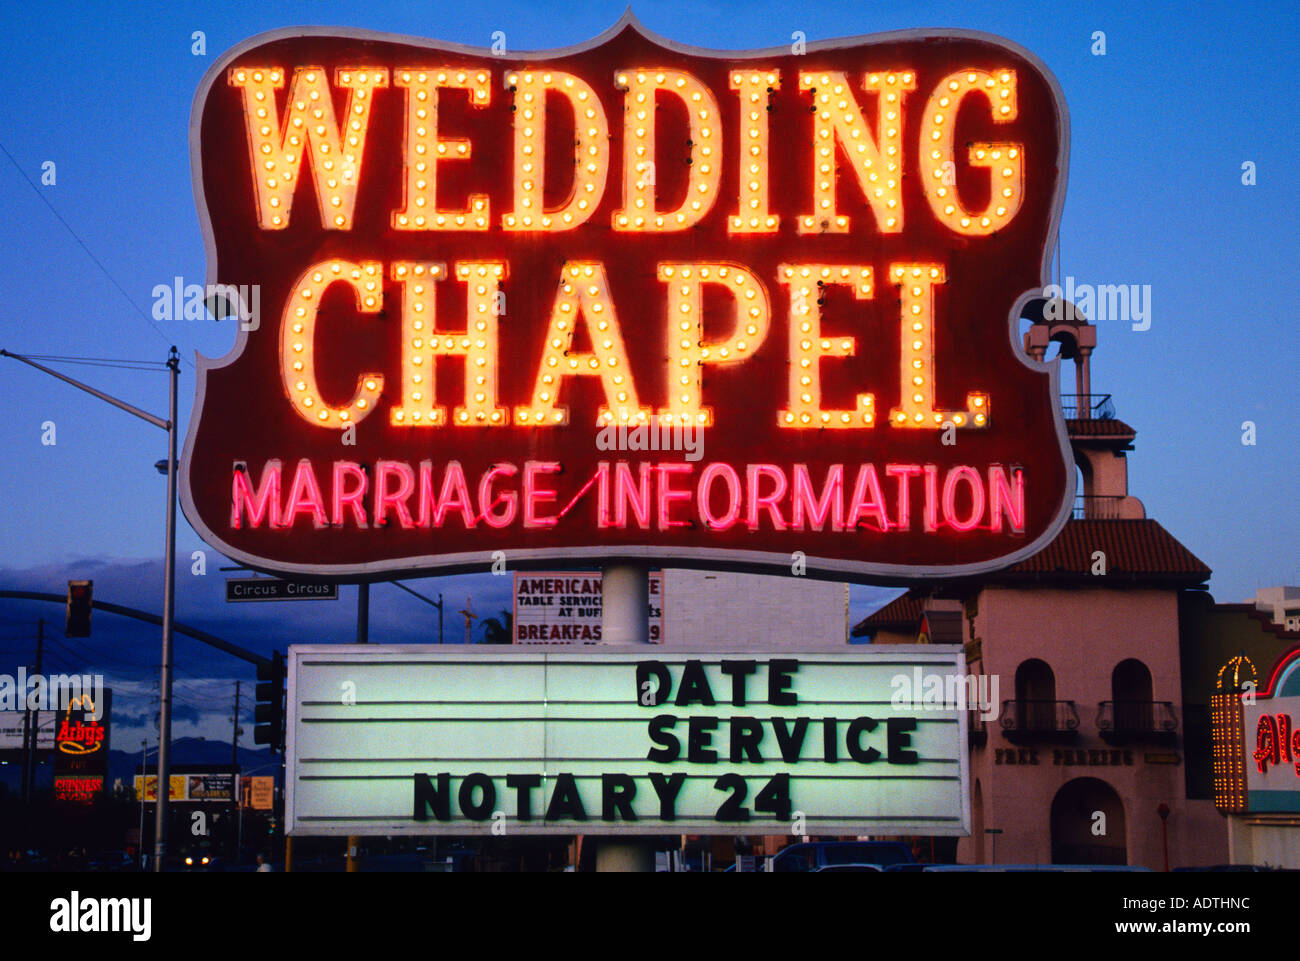 USA Las Vegas Nevada NV Wedding Chapel On The Strip At Night